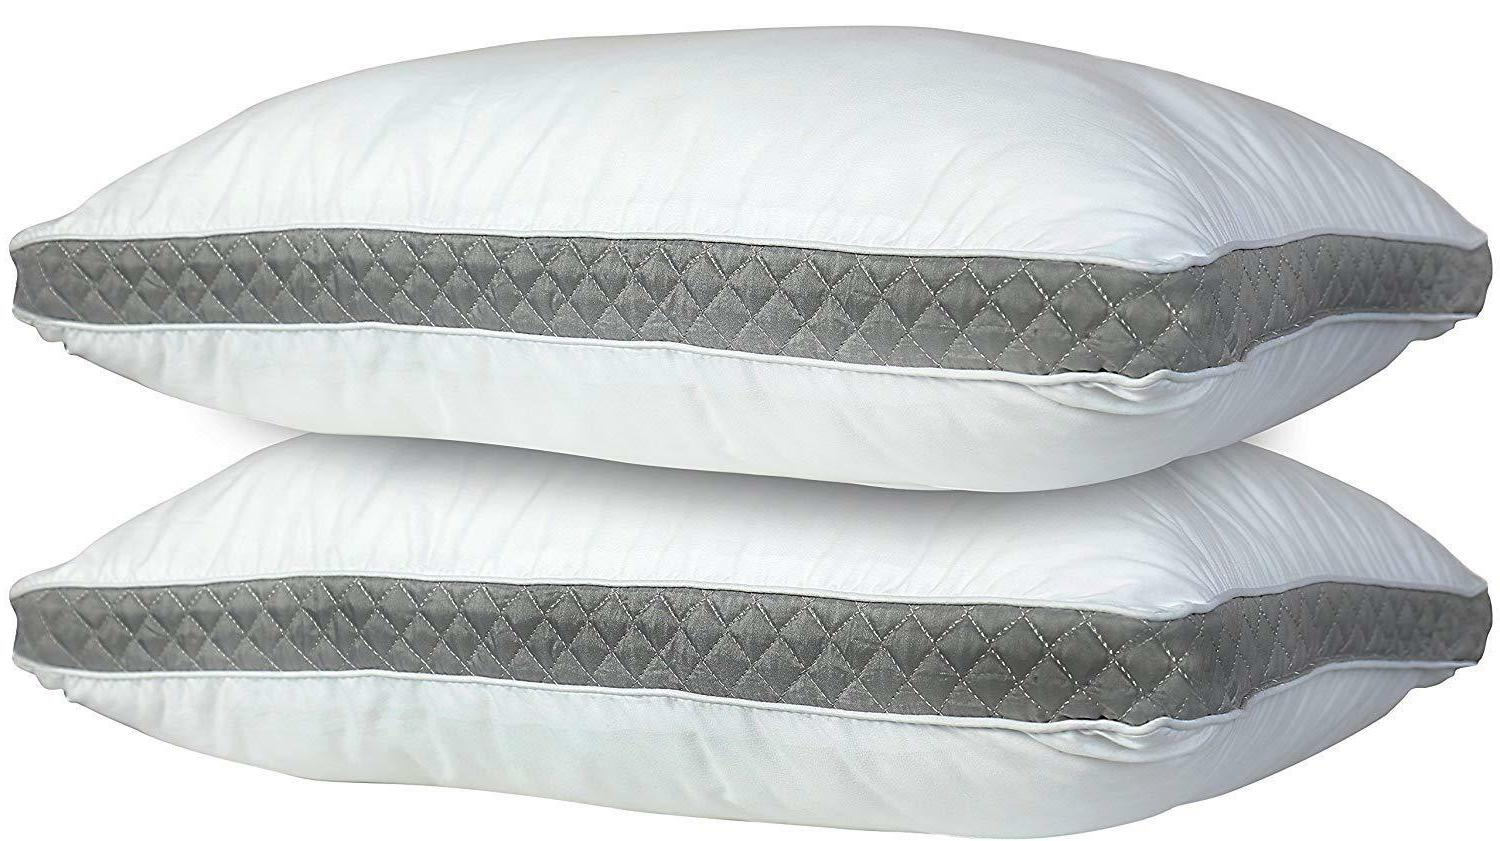 Hypoallergenic Quilted 2Pack Queen King Neck Support Extra F